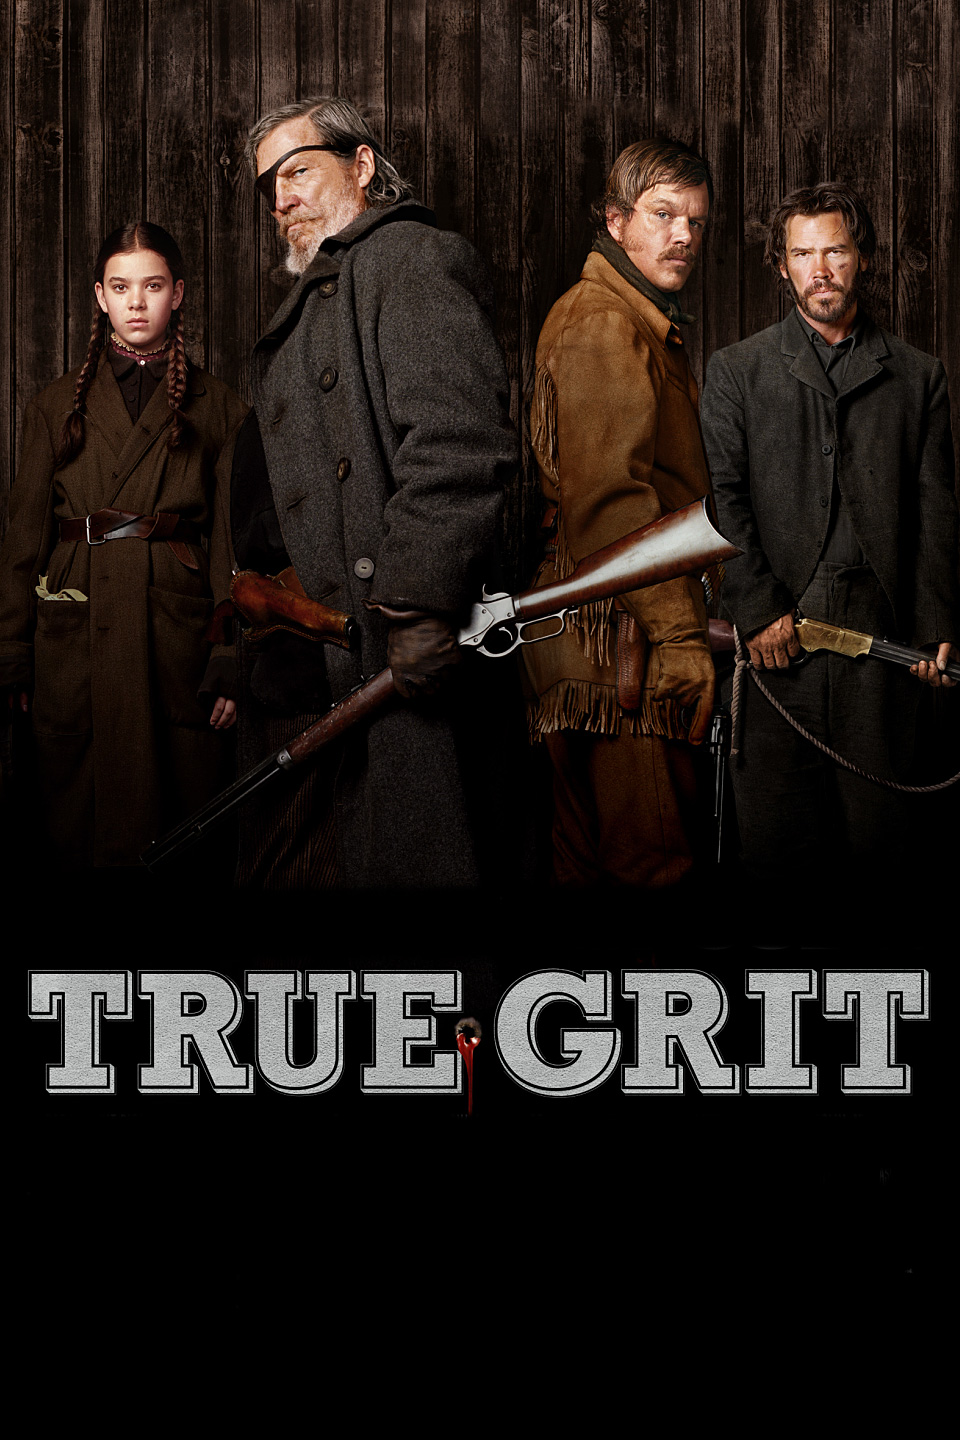 True Grit 2010 1080p BluRay x264 Dual Audio Hindi English MSUBS